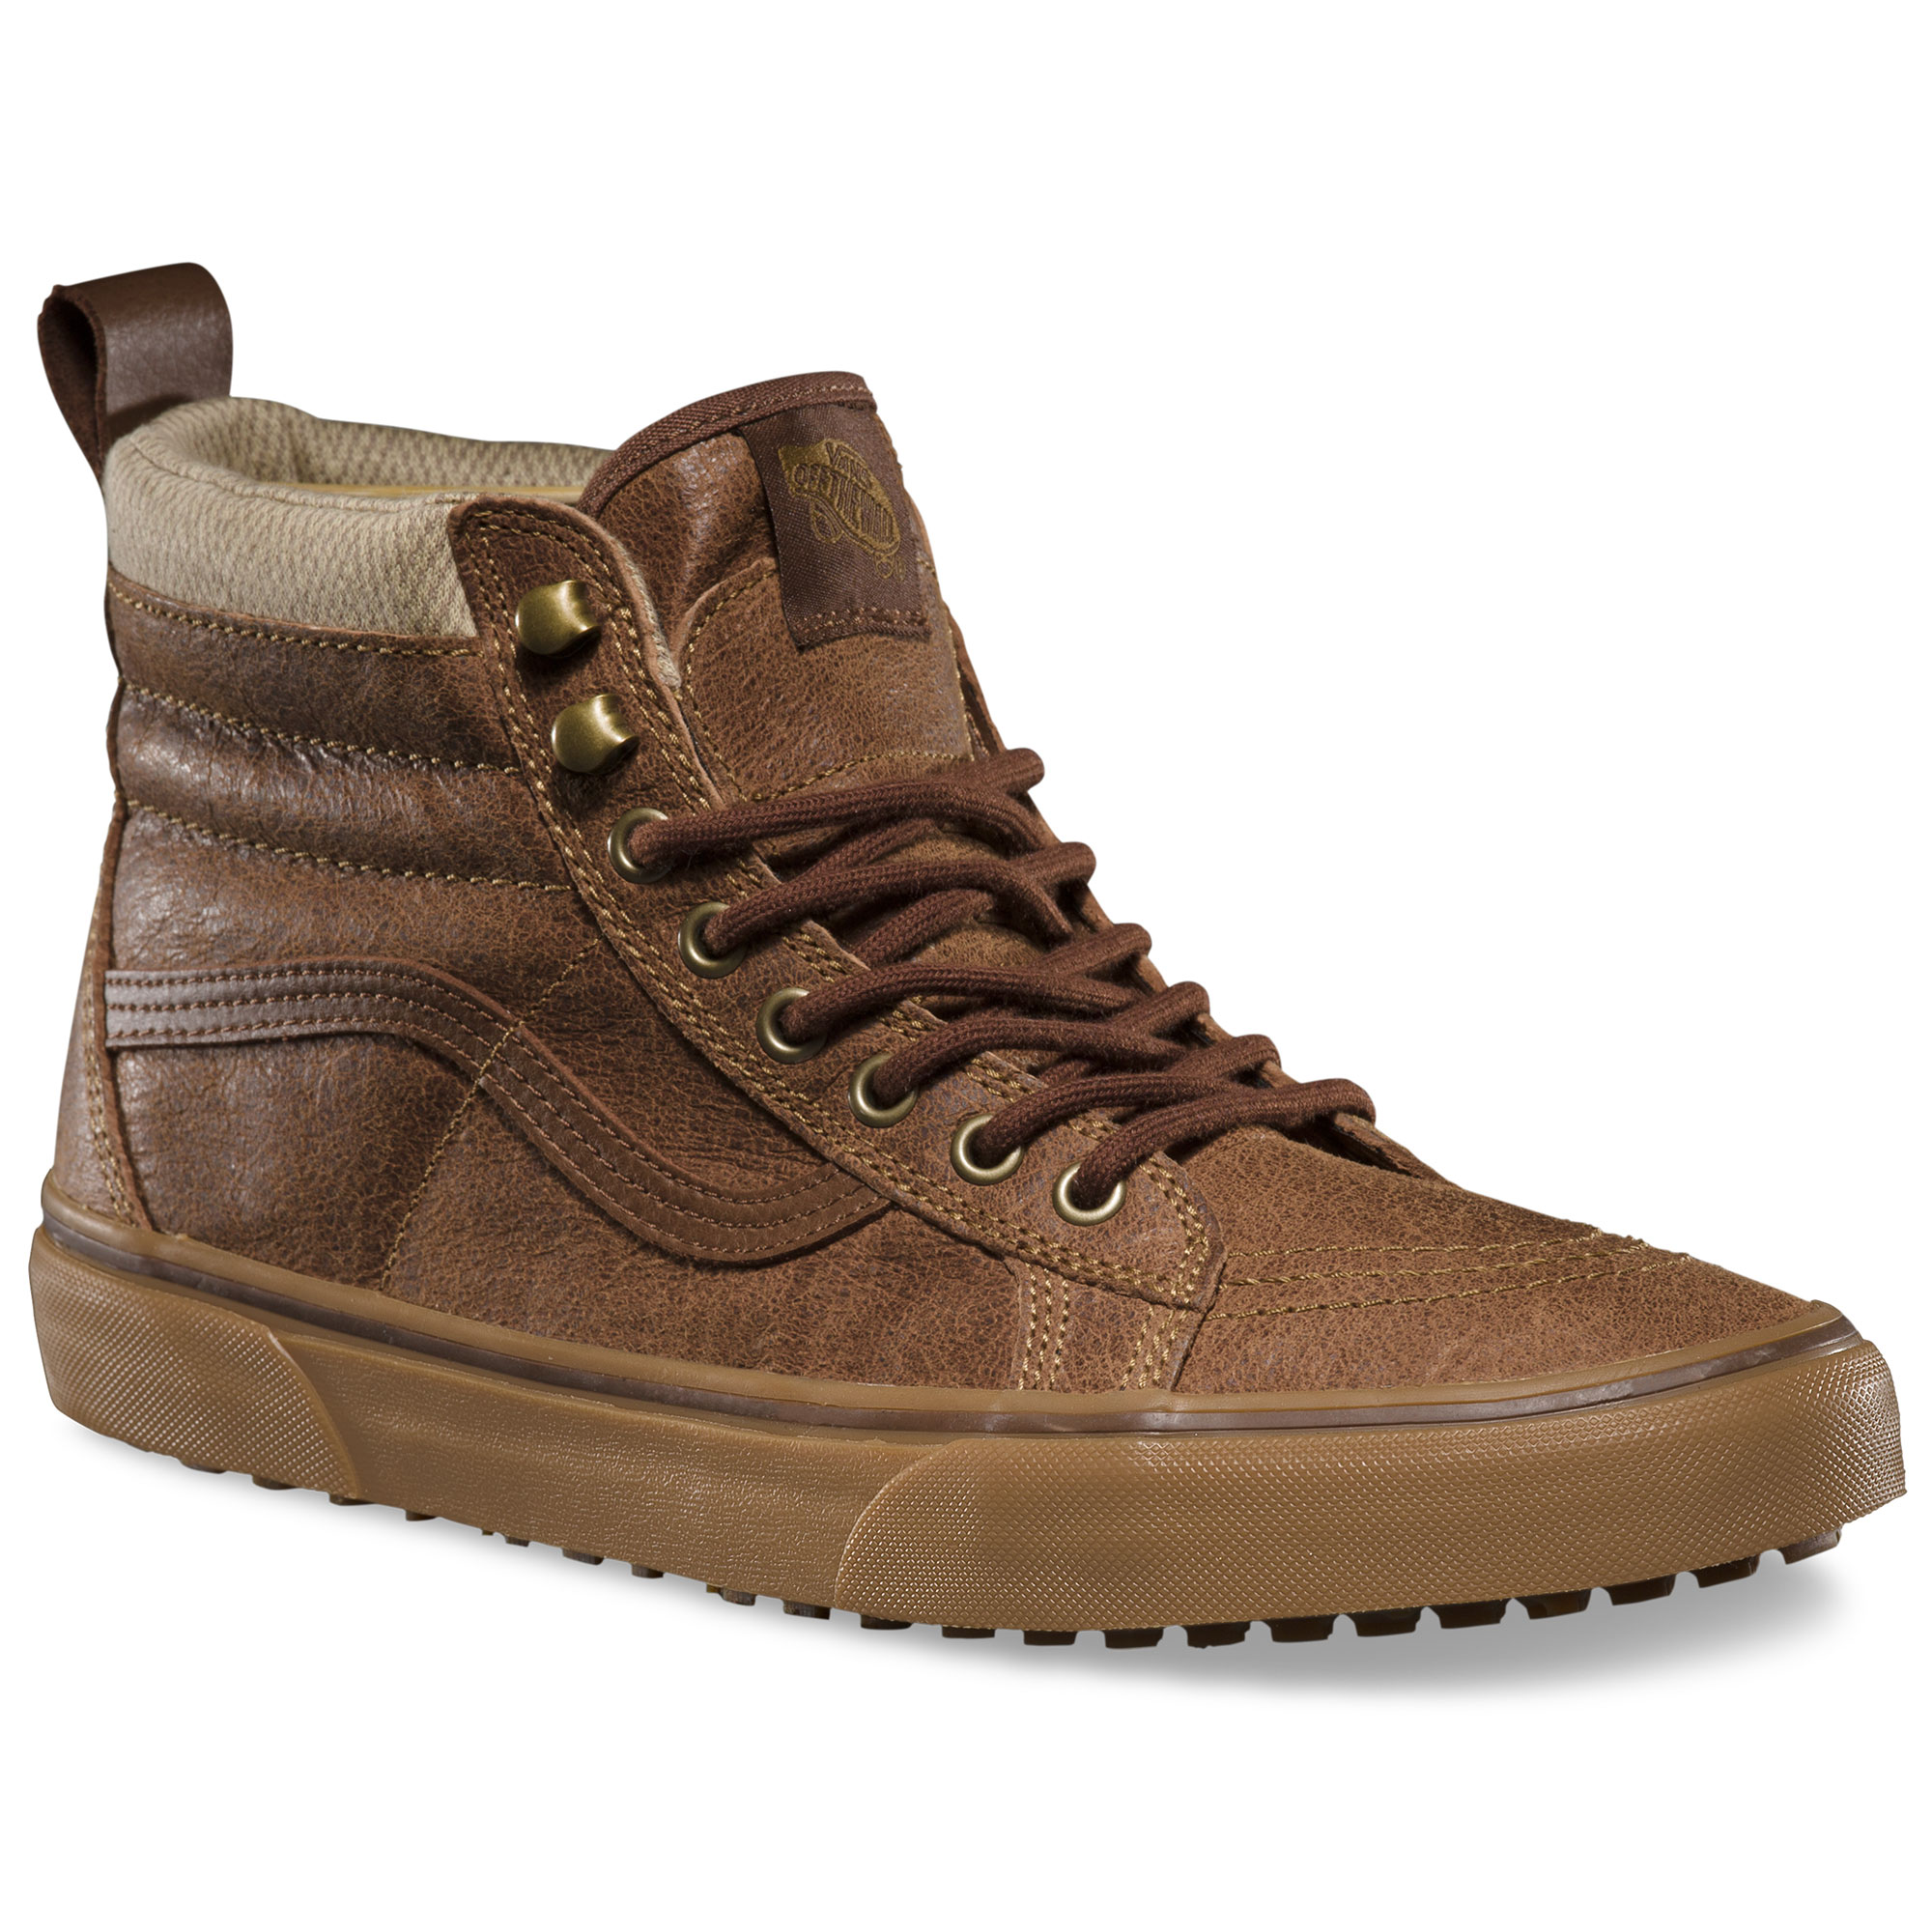 Sk8-Hi MTE Leather Casual Shoes